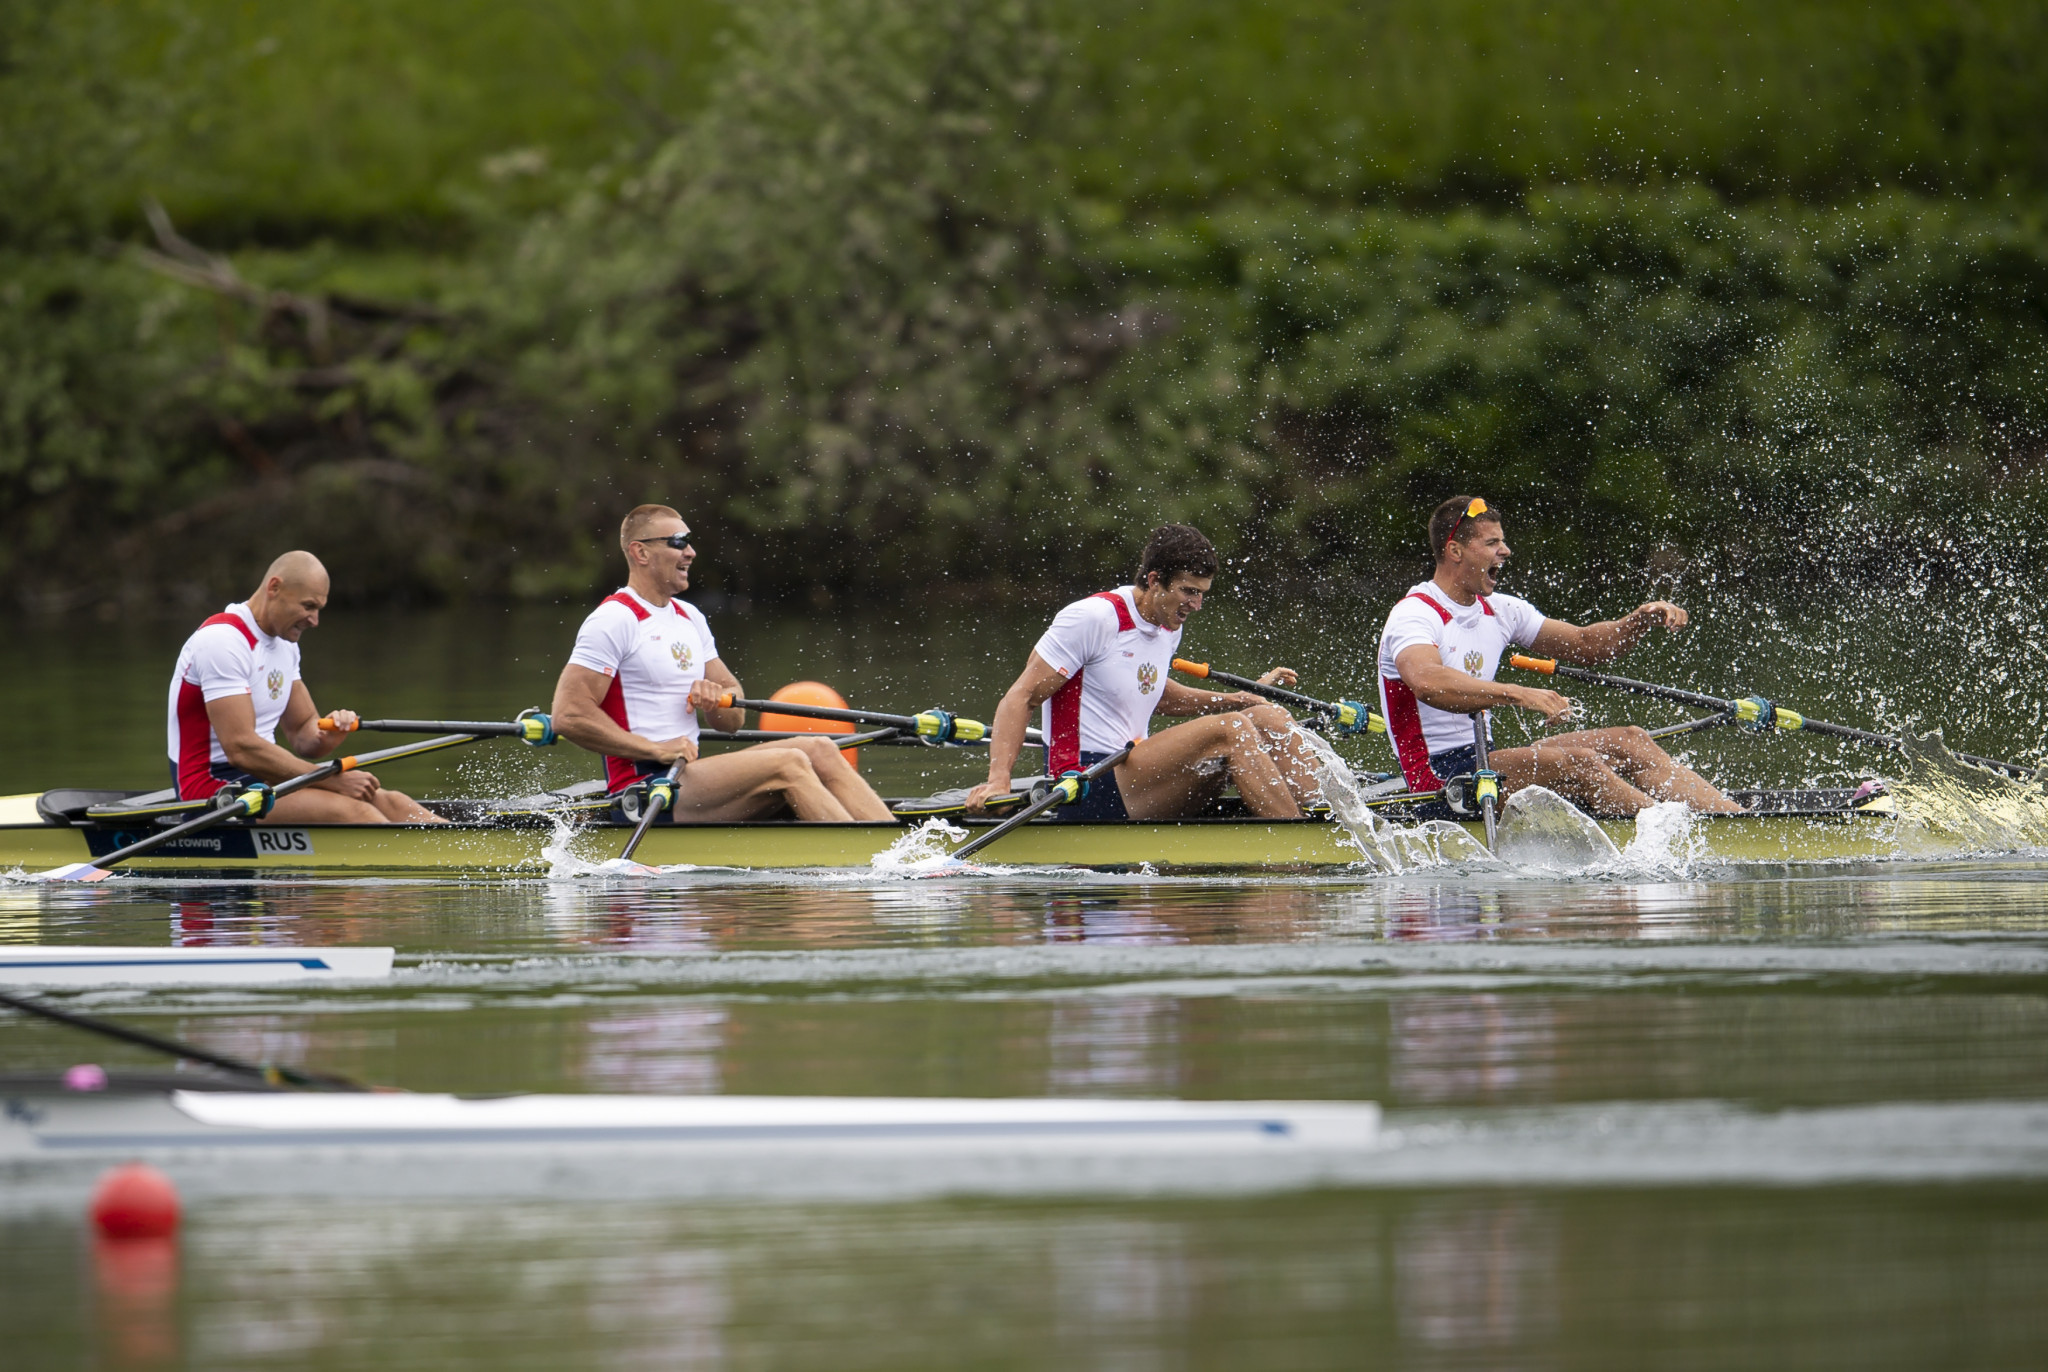 ROC quadruple sculls team withdrawn from Tokyo 2020 after doping cases